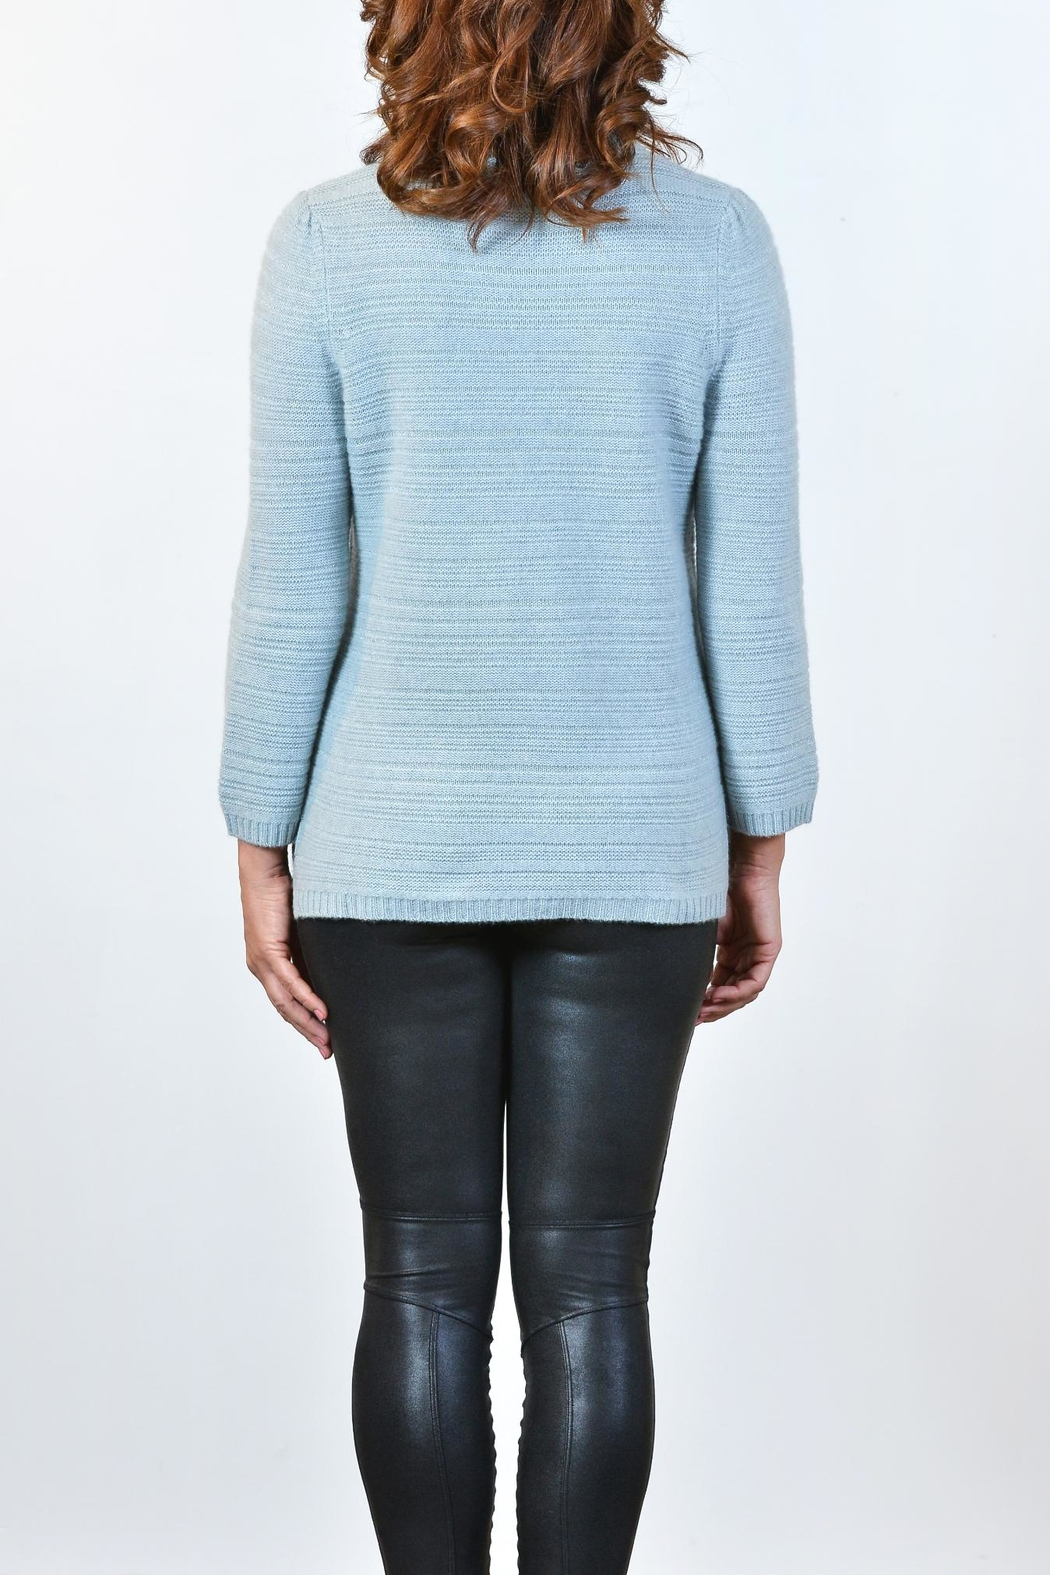 Repeat Lurex Accent Mock Top - Front Full Image